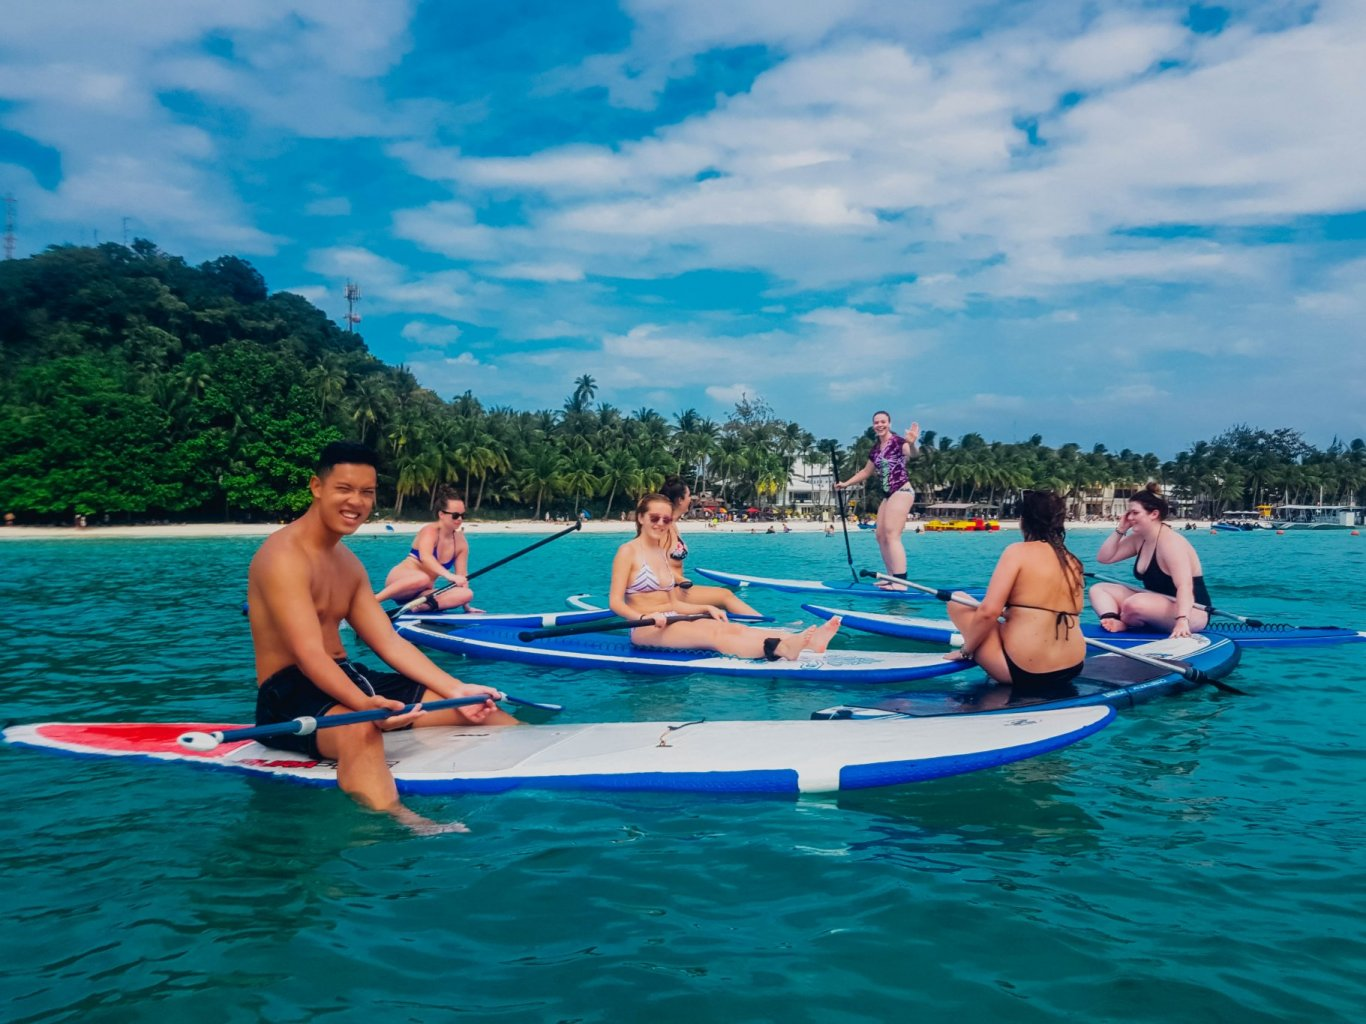 Siargao Island in the Philippines is one of Asia's best spots for watersports